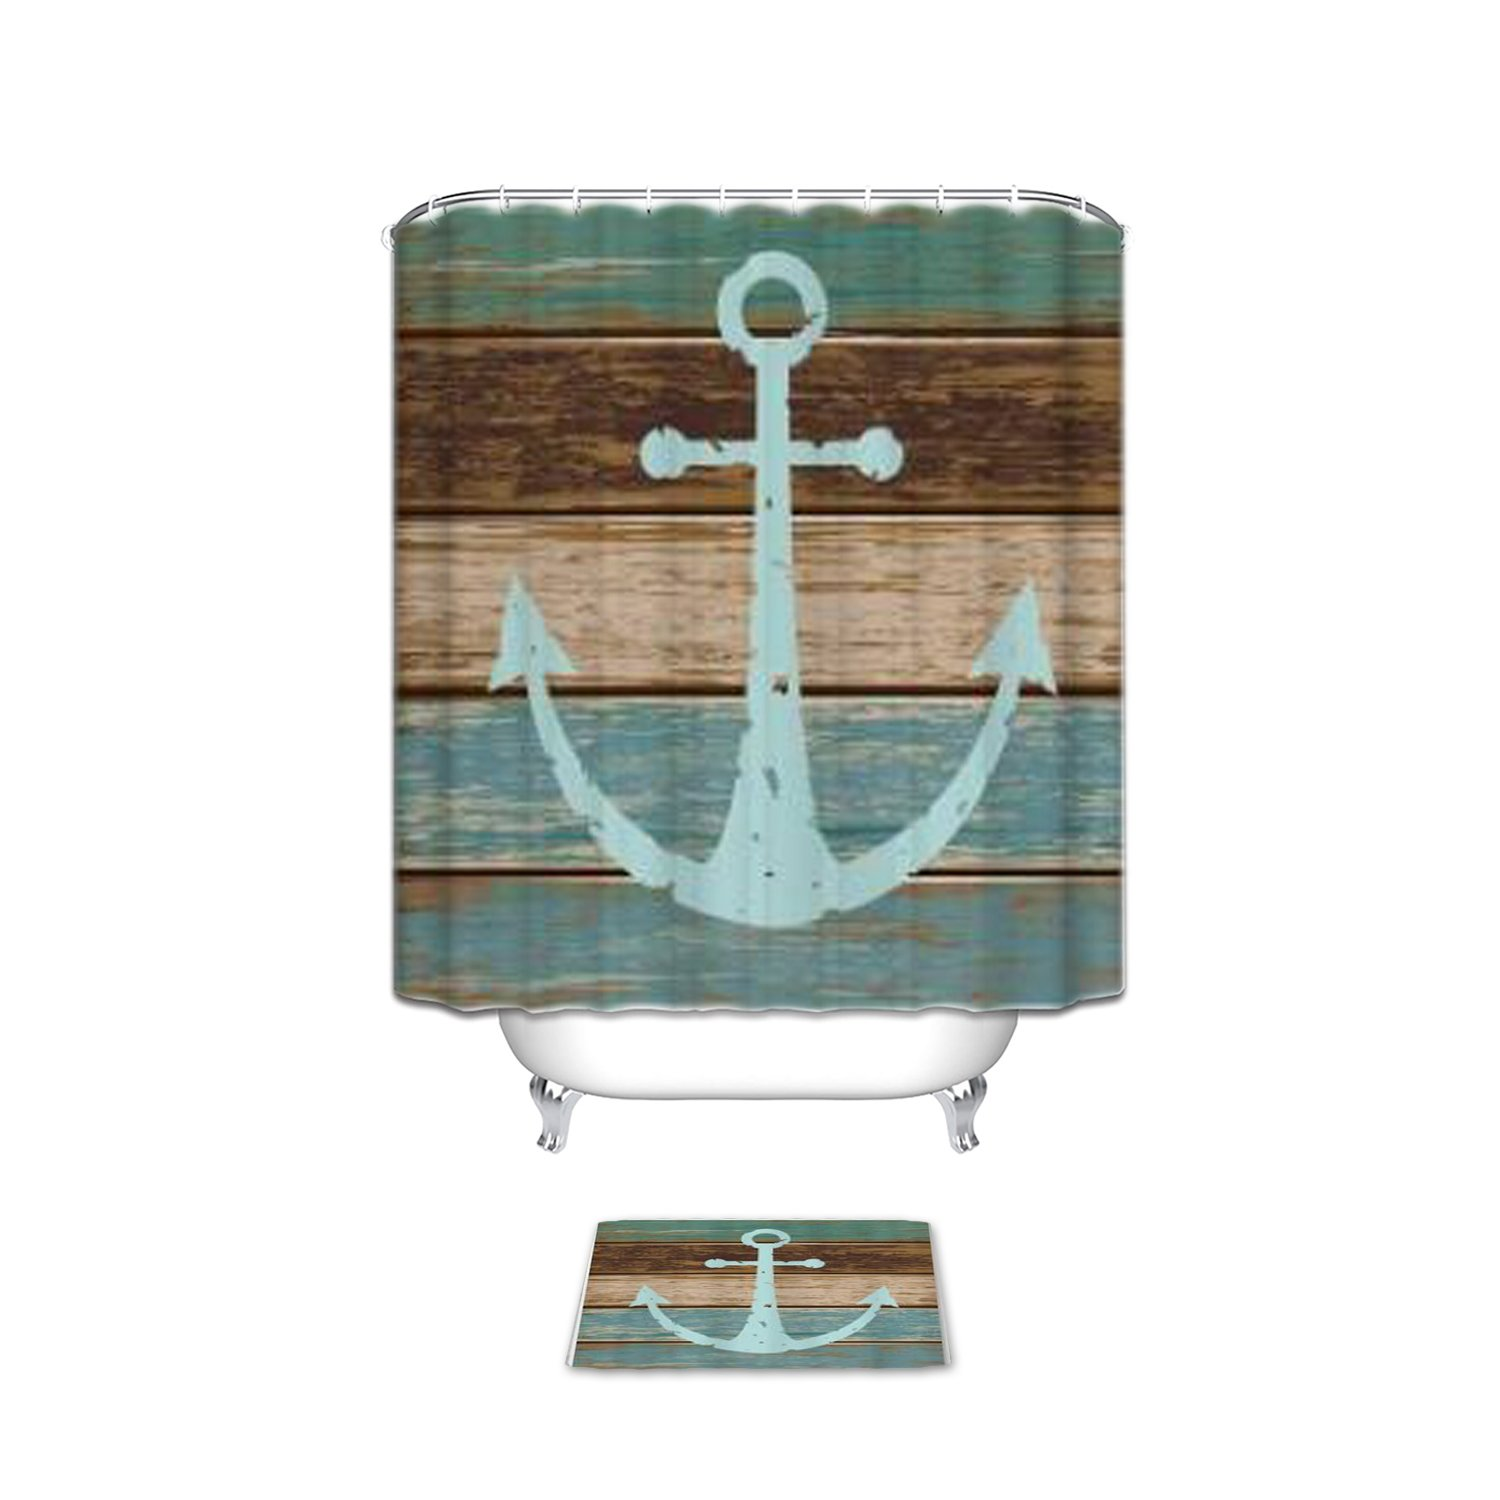 Nautical Anchor Rustic Wood Bathroom Shower Curtain with Mats Rugs Bath Accessory Set